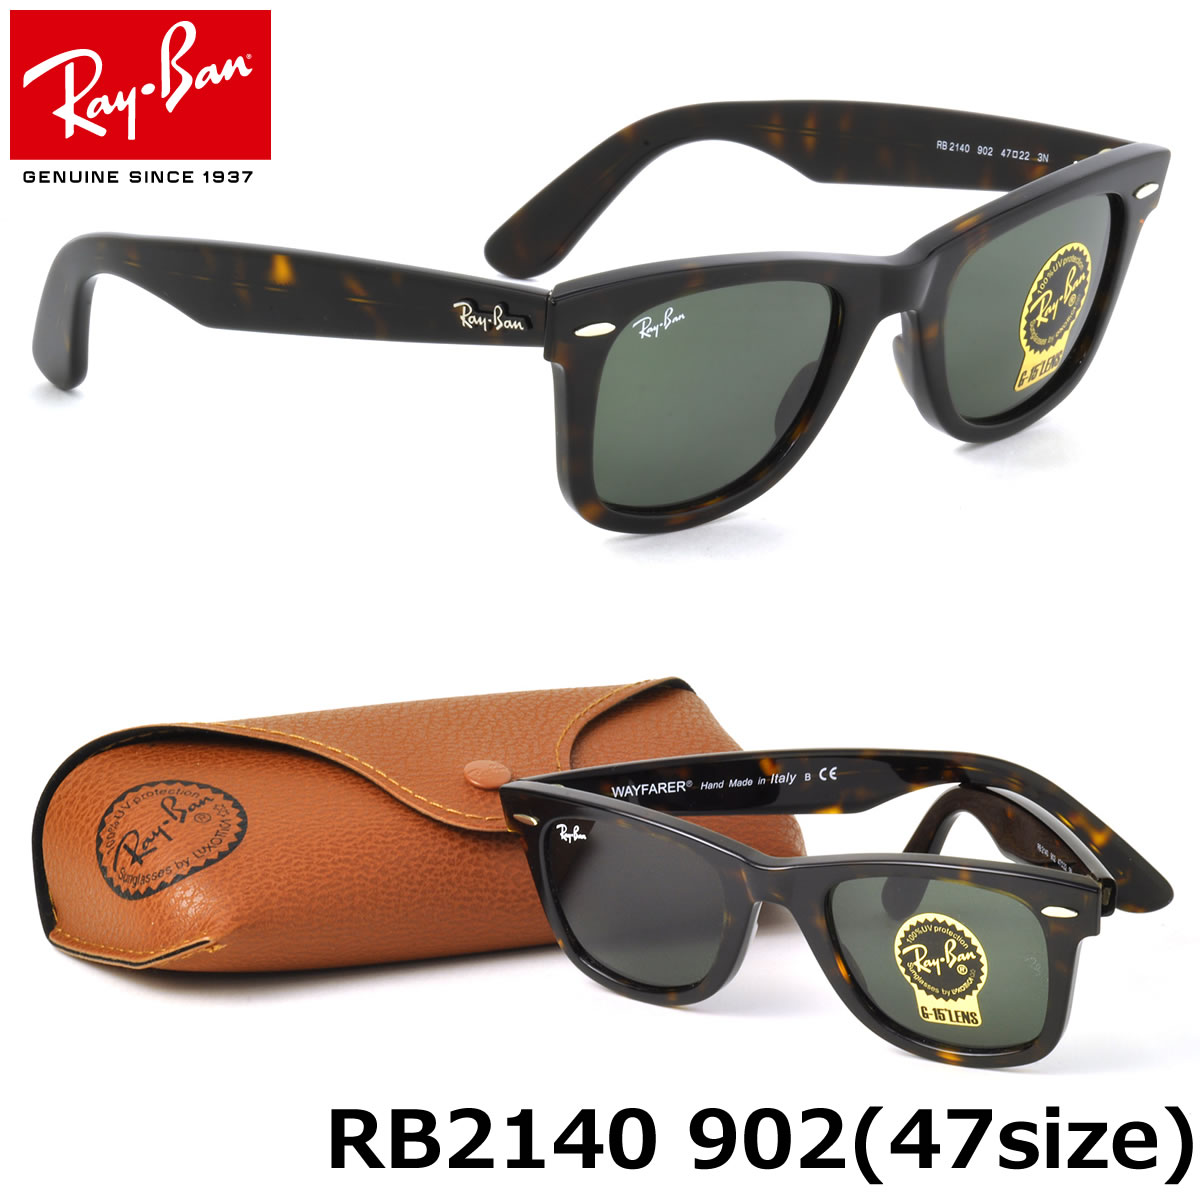 582ac706d3 Ray Ban Rb2140 902 | www.tapdance.org